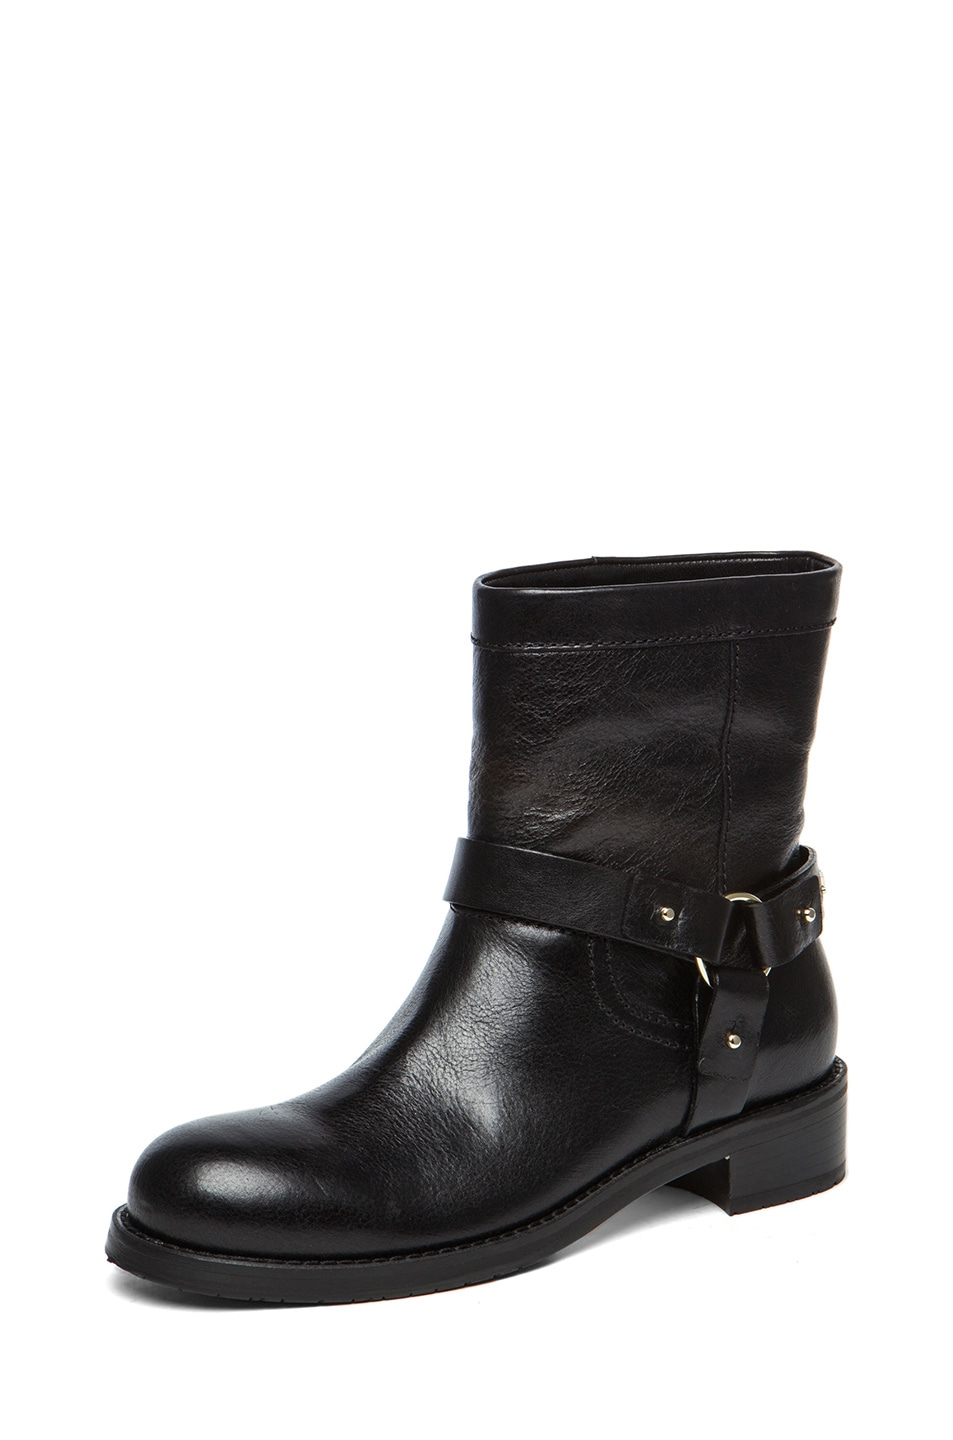 Image 2 of Jimmy Choo Dixie Shiny Calfskin Leather Flat Ankle Boot in Black